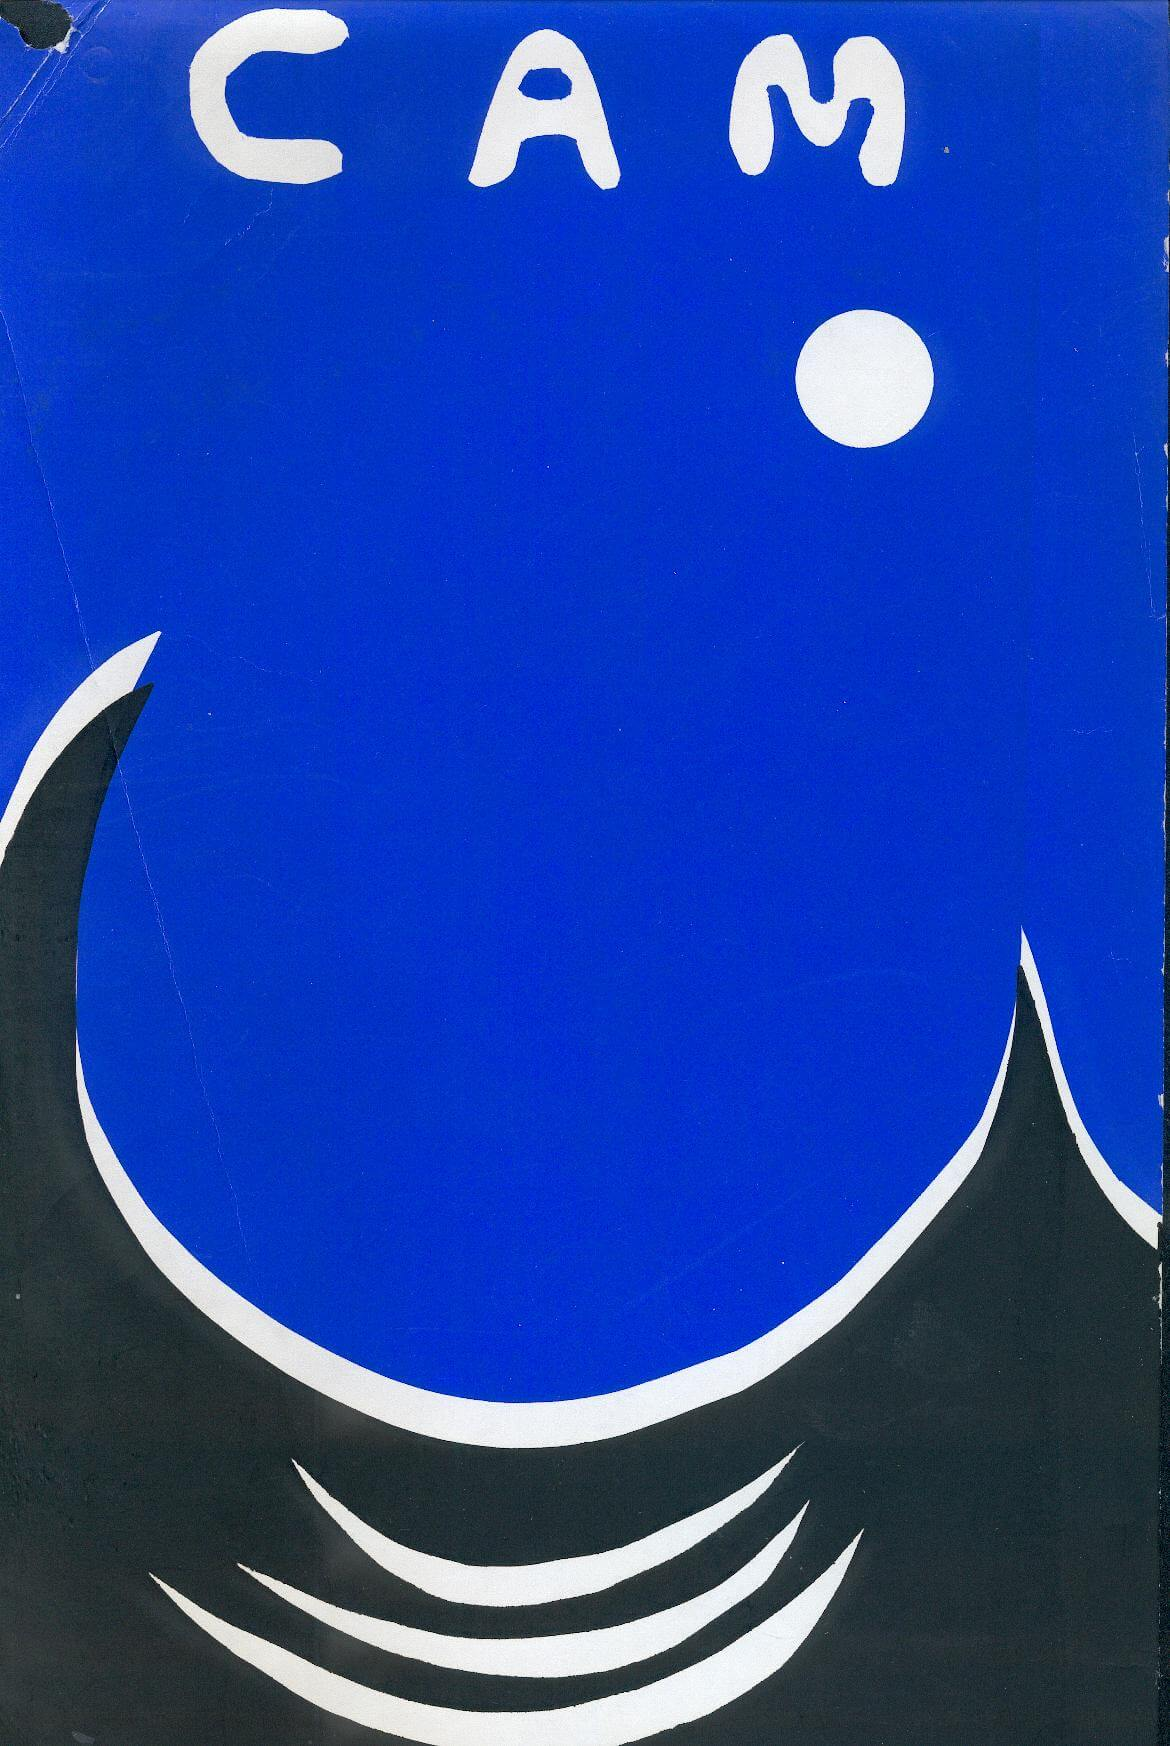 Newsletter cover in a vivid blue, with a white moon and black and white wave patterns, suggesting a moon shining over a tropical sea. The acronym 'CAM' is written in white at the top of the page. The cover is painted using stencils or similar.